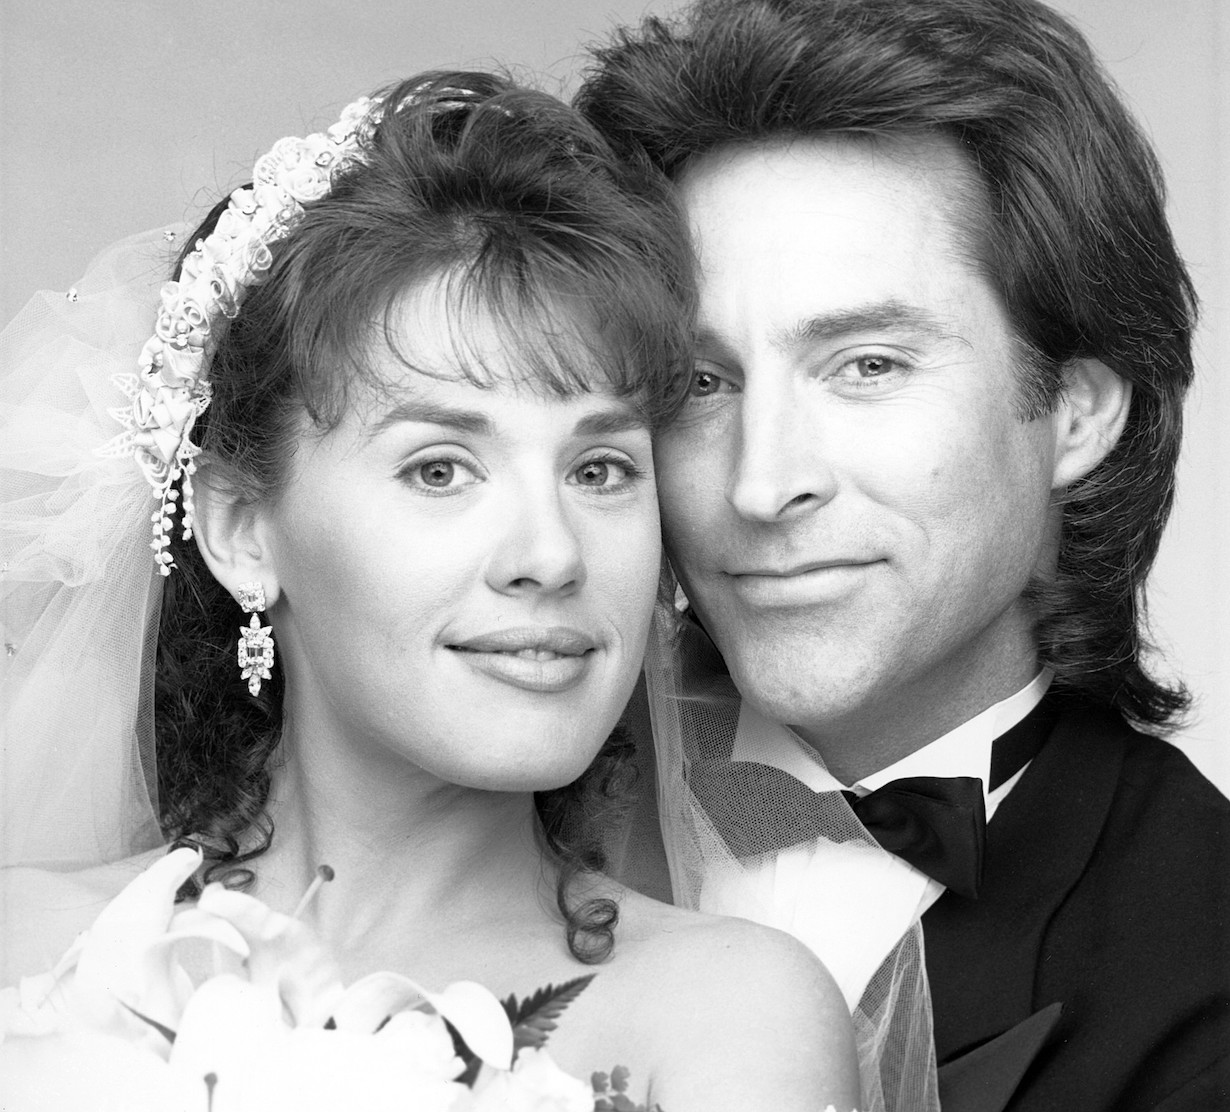 DAYS OF OUR LIVES, from left: Staci Greason, Drake Hogestyn, john isabella wedding